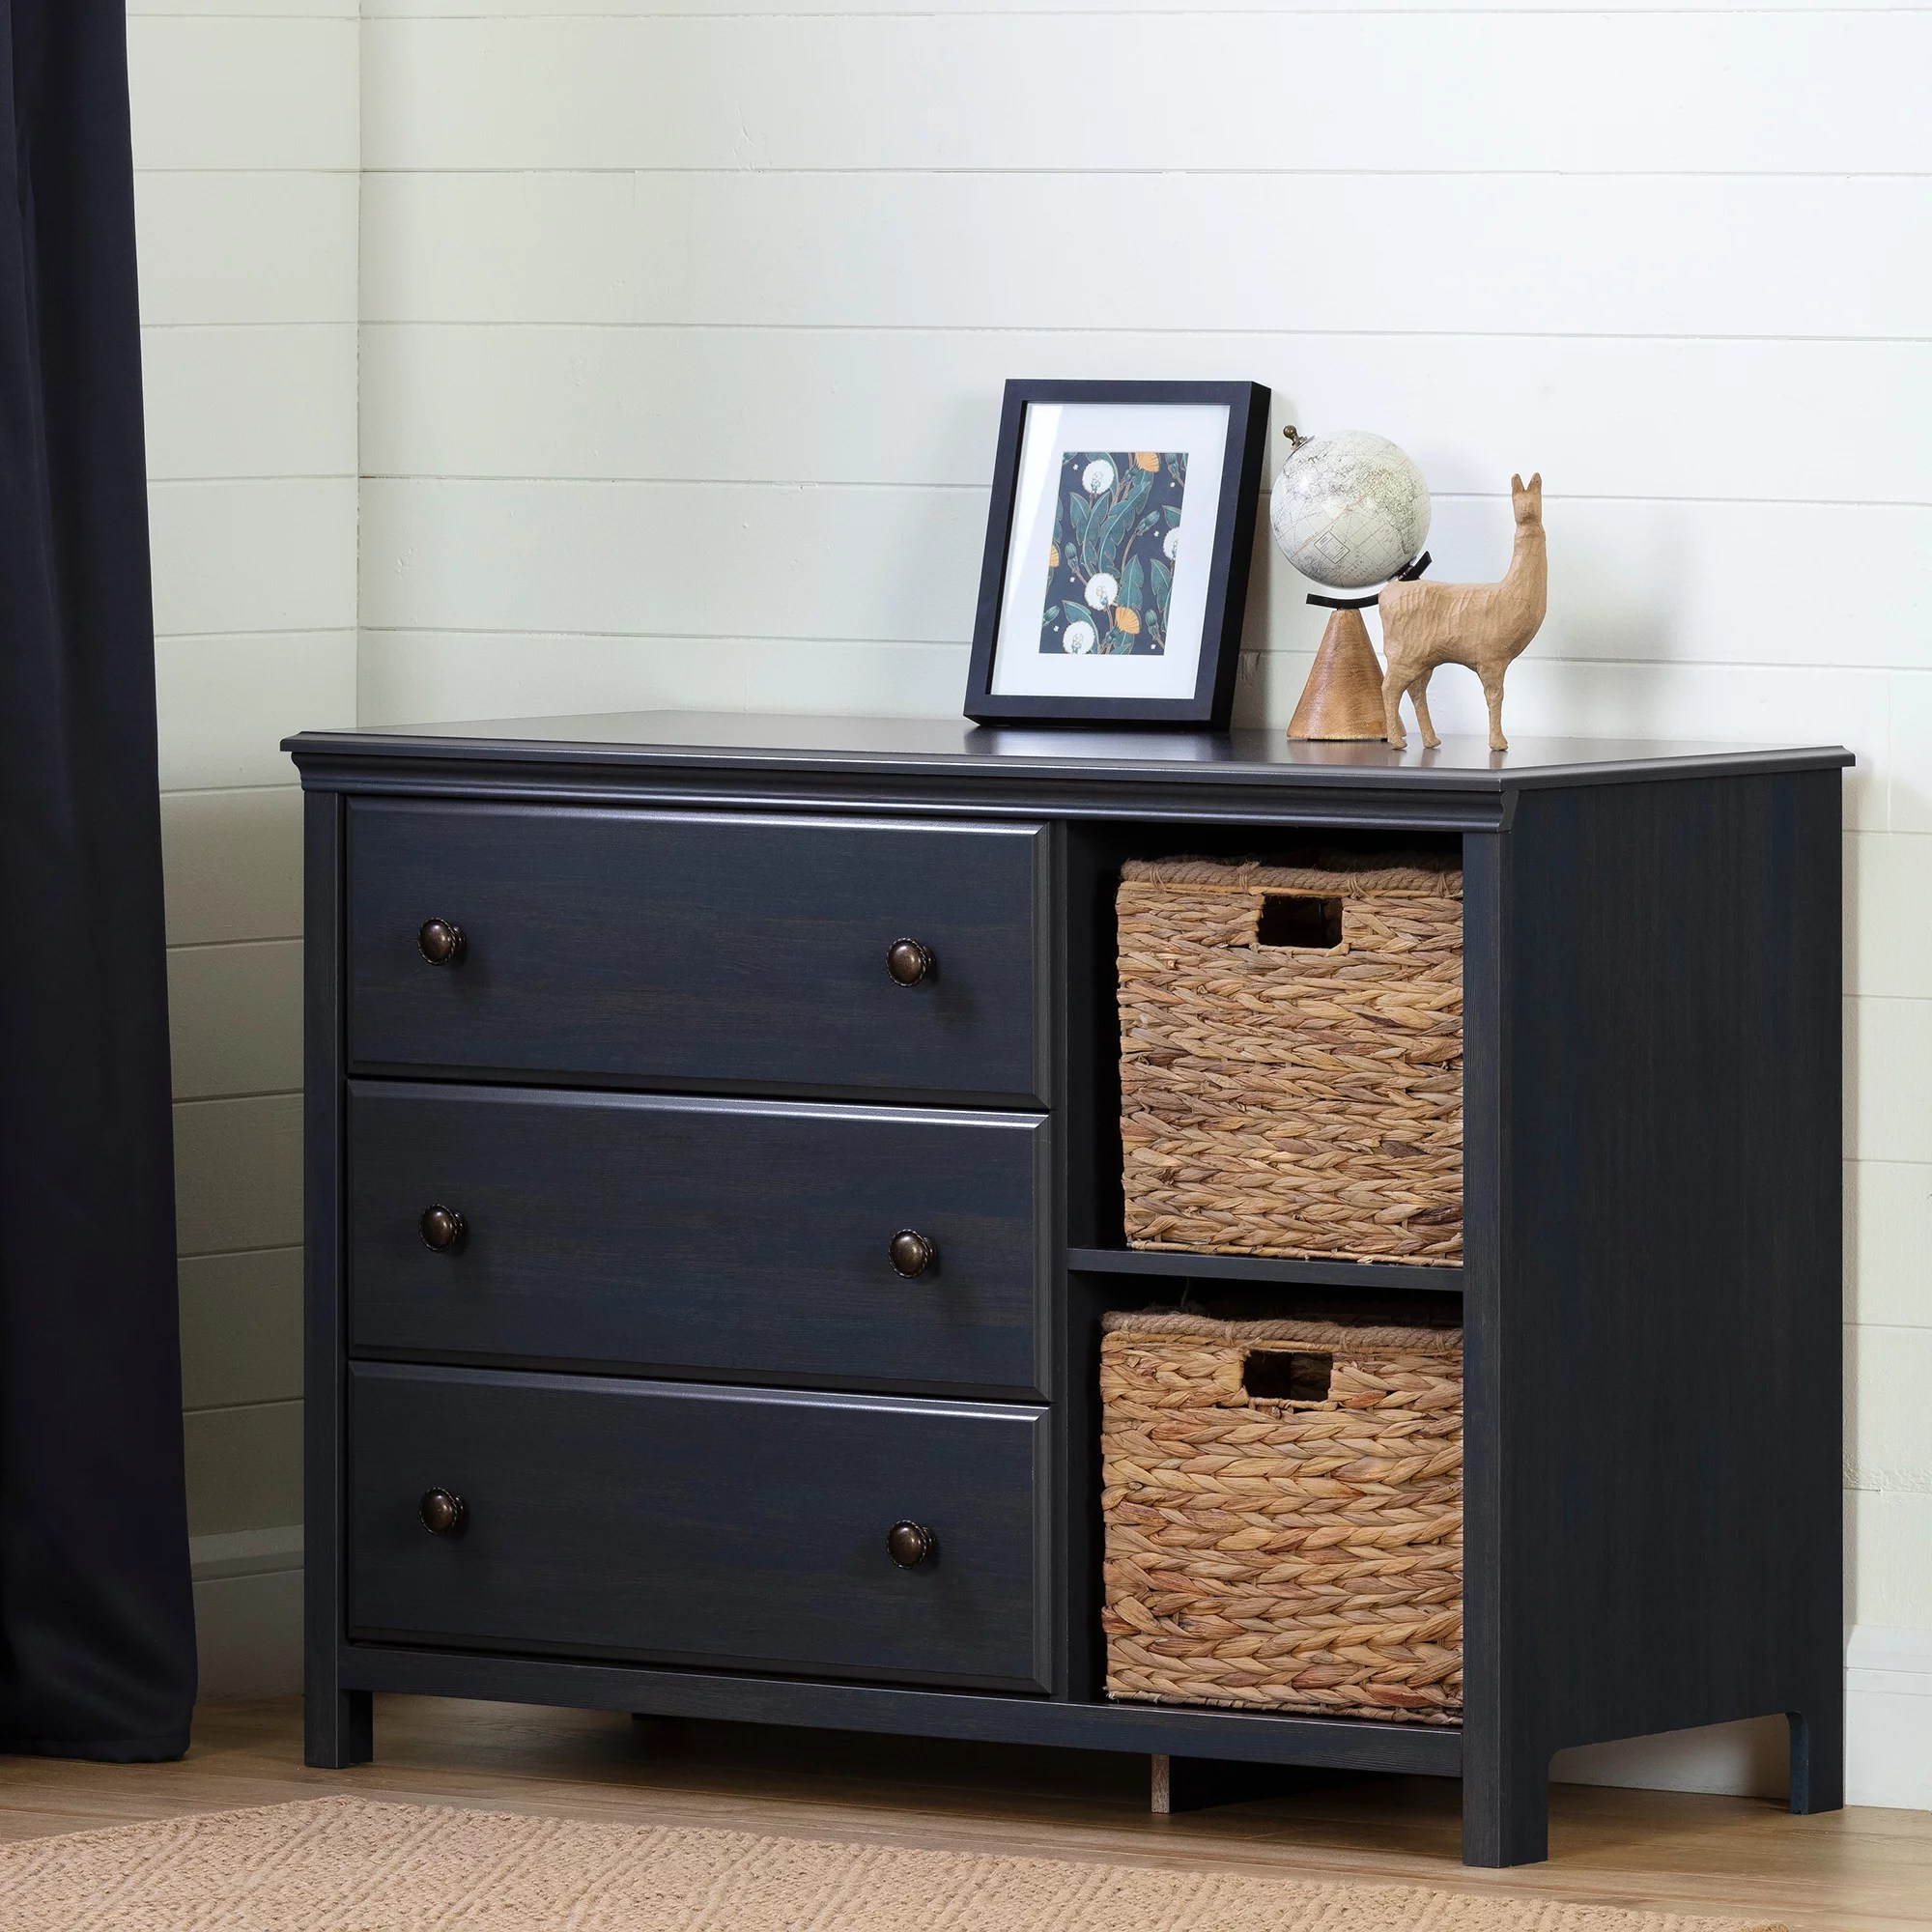 south shore cotton candy 3 drawer dresser with baskets blueberry